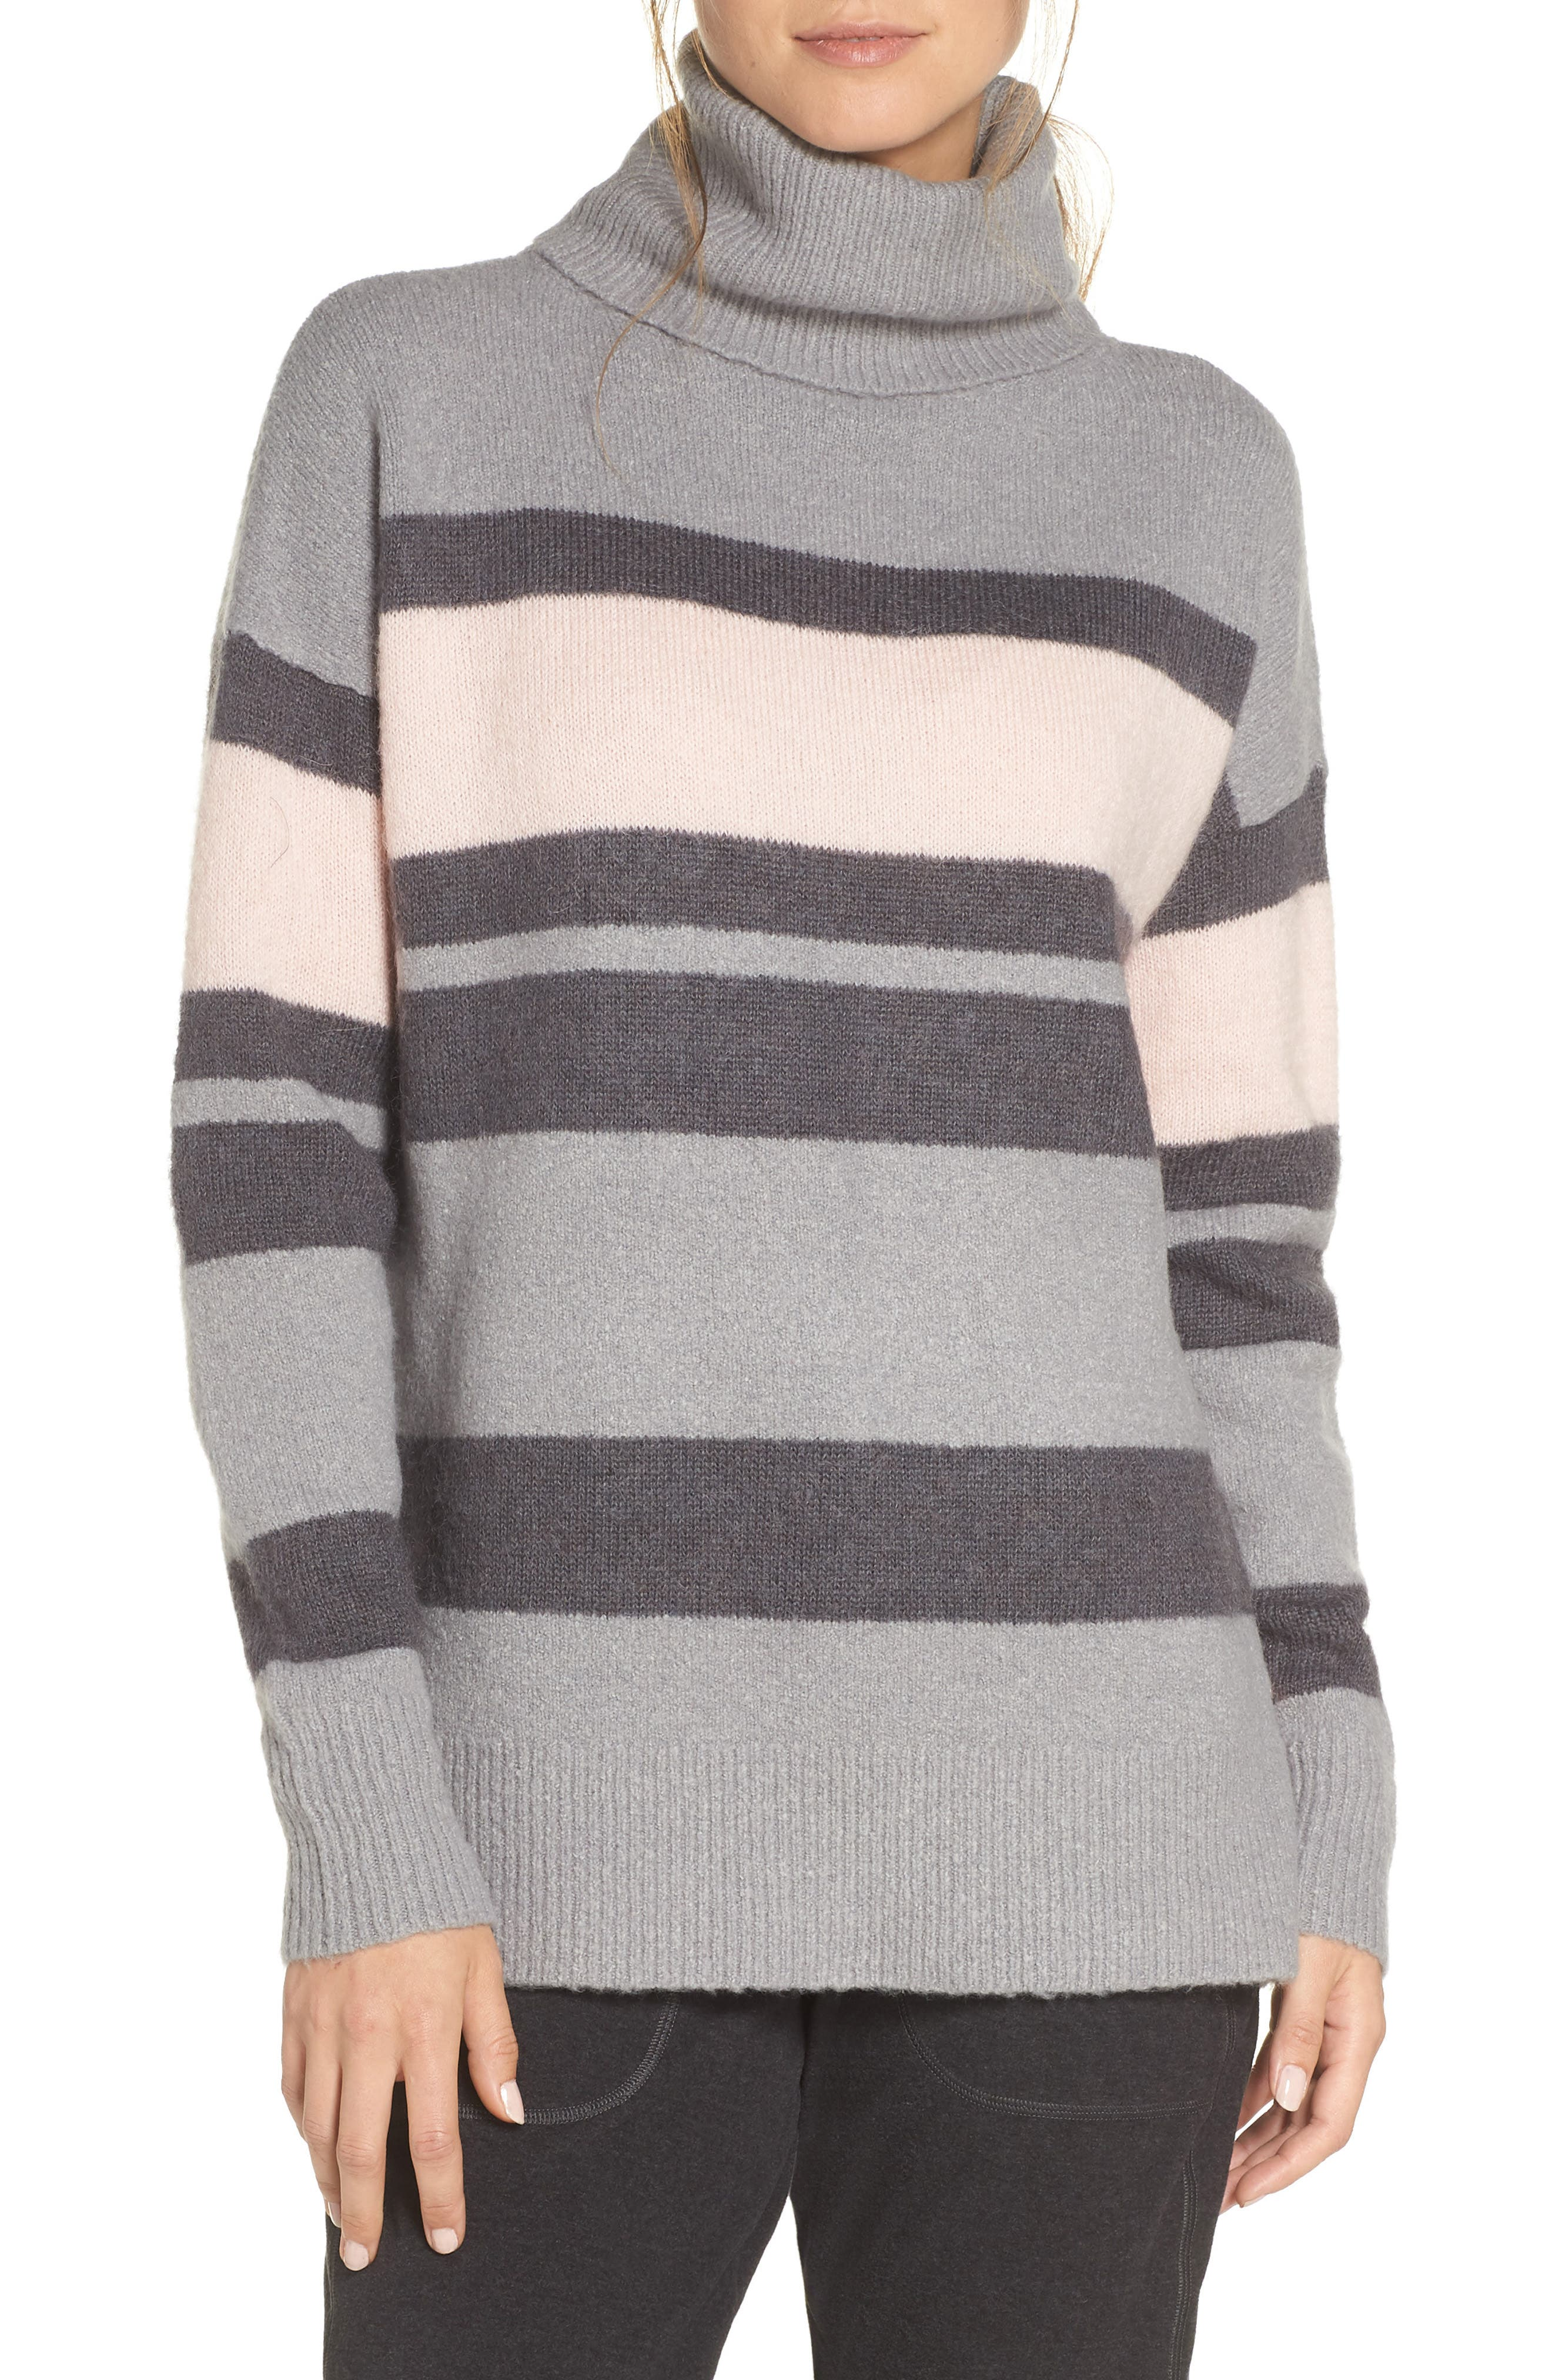 SWEATY BETTY,                             Bloomsbury Sweater,                             Main thumbnail 1, color,                             023